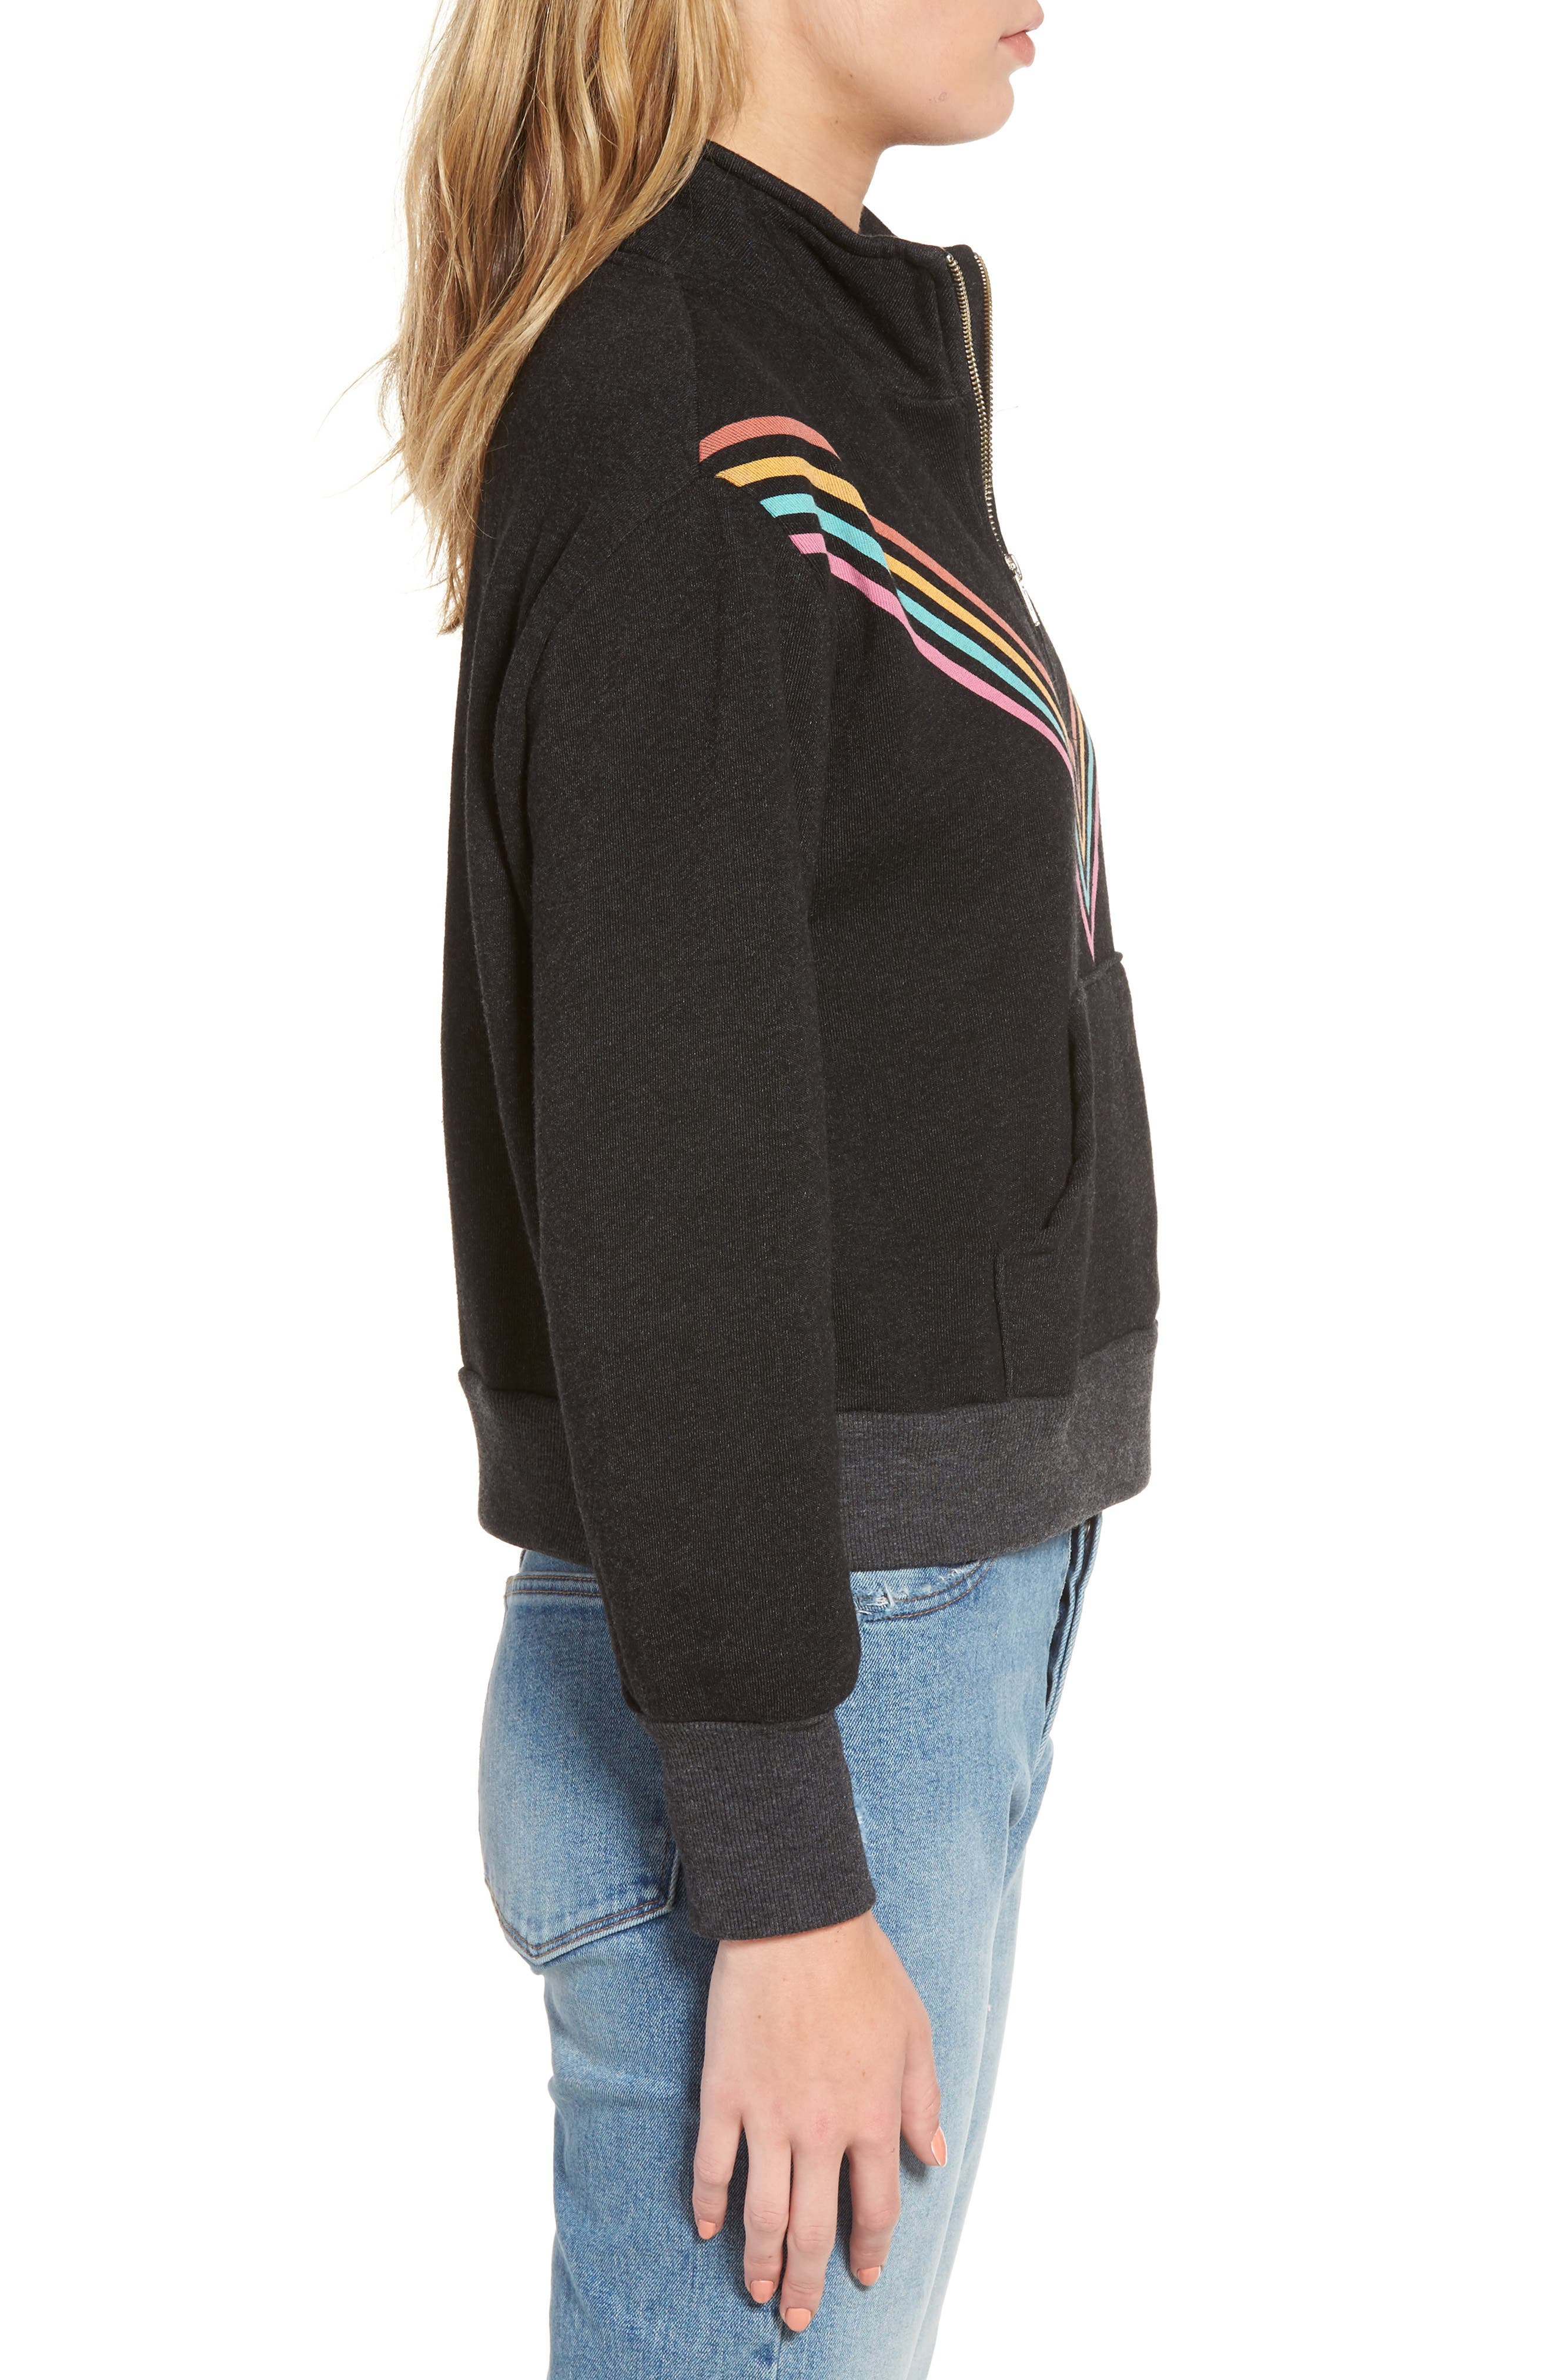 '80s Track Star Soto Warm-Up Sweatshirt,                             Alternate thumbnail 3, color,                             Heathered Black